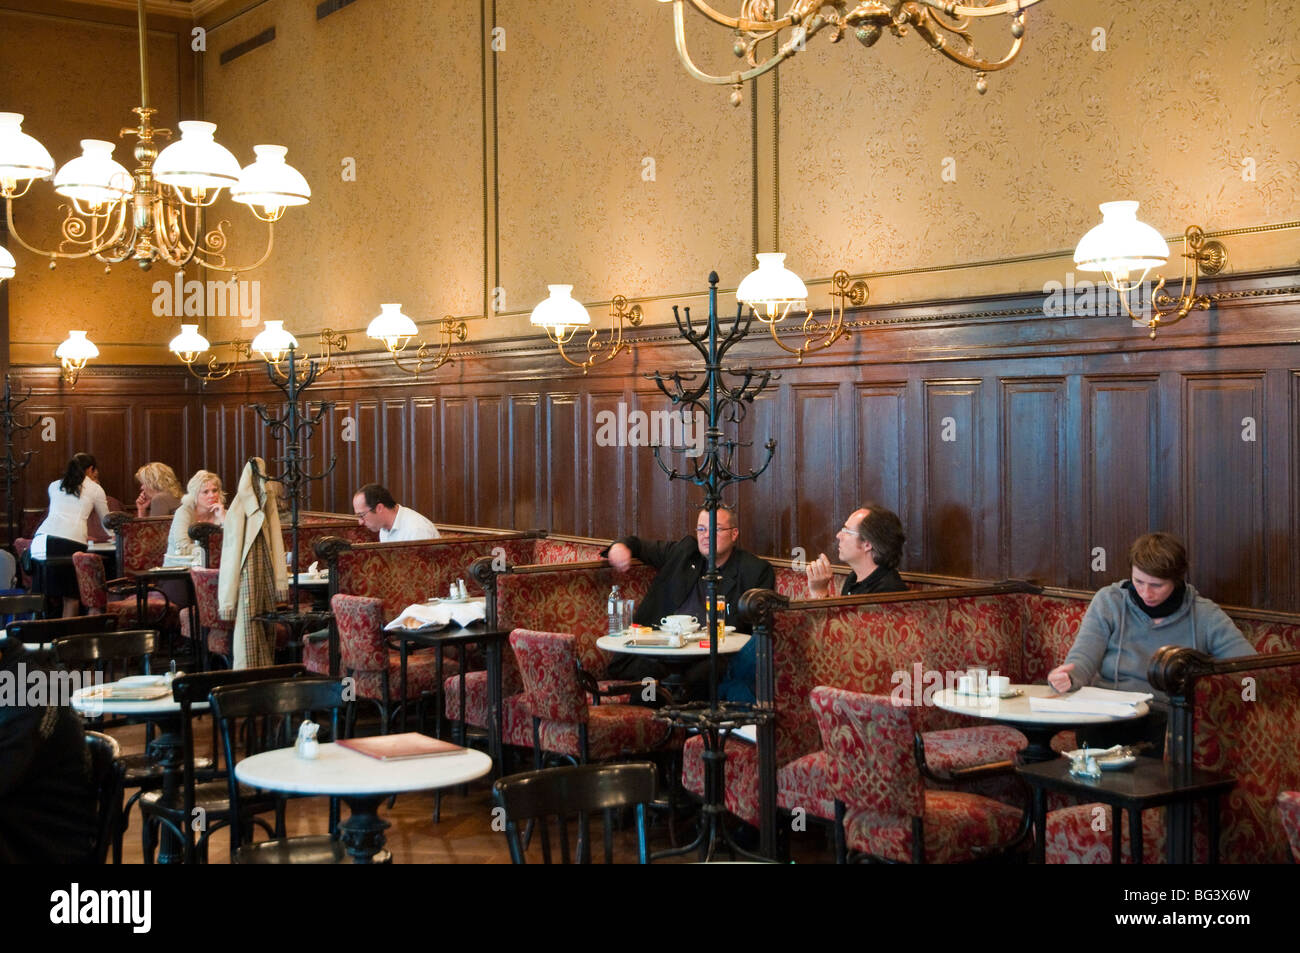 wiener kaffeehaus caf sperl wien sterreich caf sperl vienna stock photo 27131297 alamy. Black Bedroom Furniture Sets. Home Design Ideas